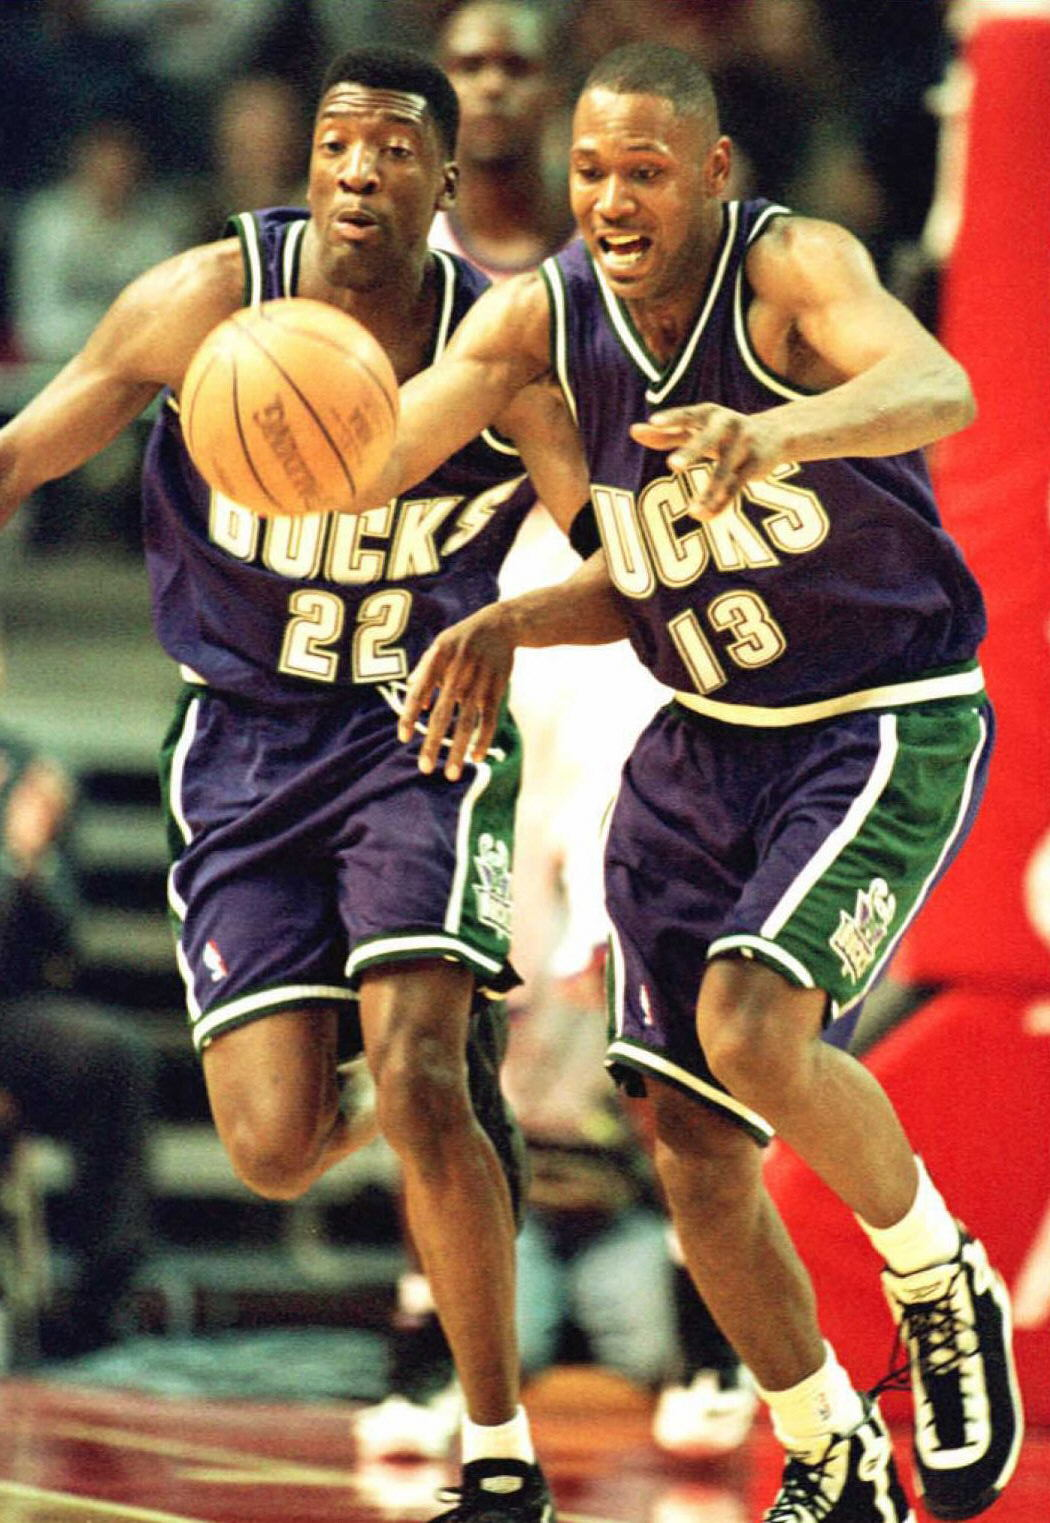 Milwaukee Bucks Glenn Robinson (R) goes after the loose ball with teammate Johnny Newman (L)